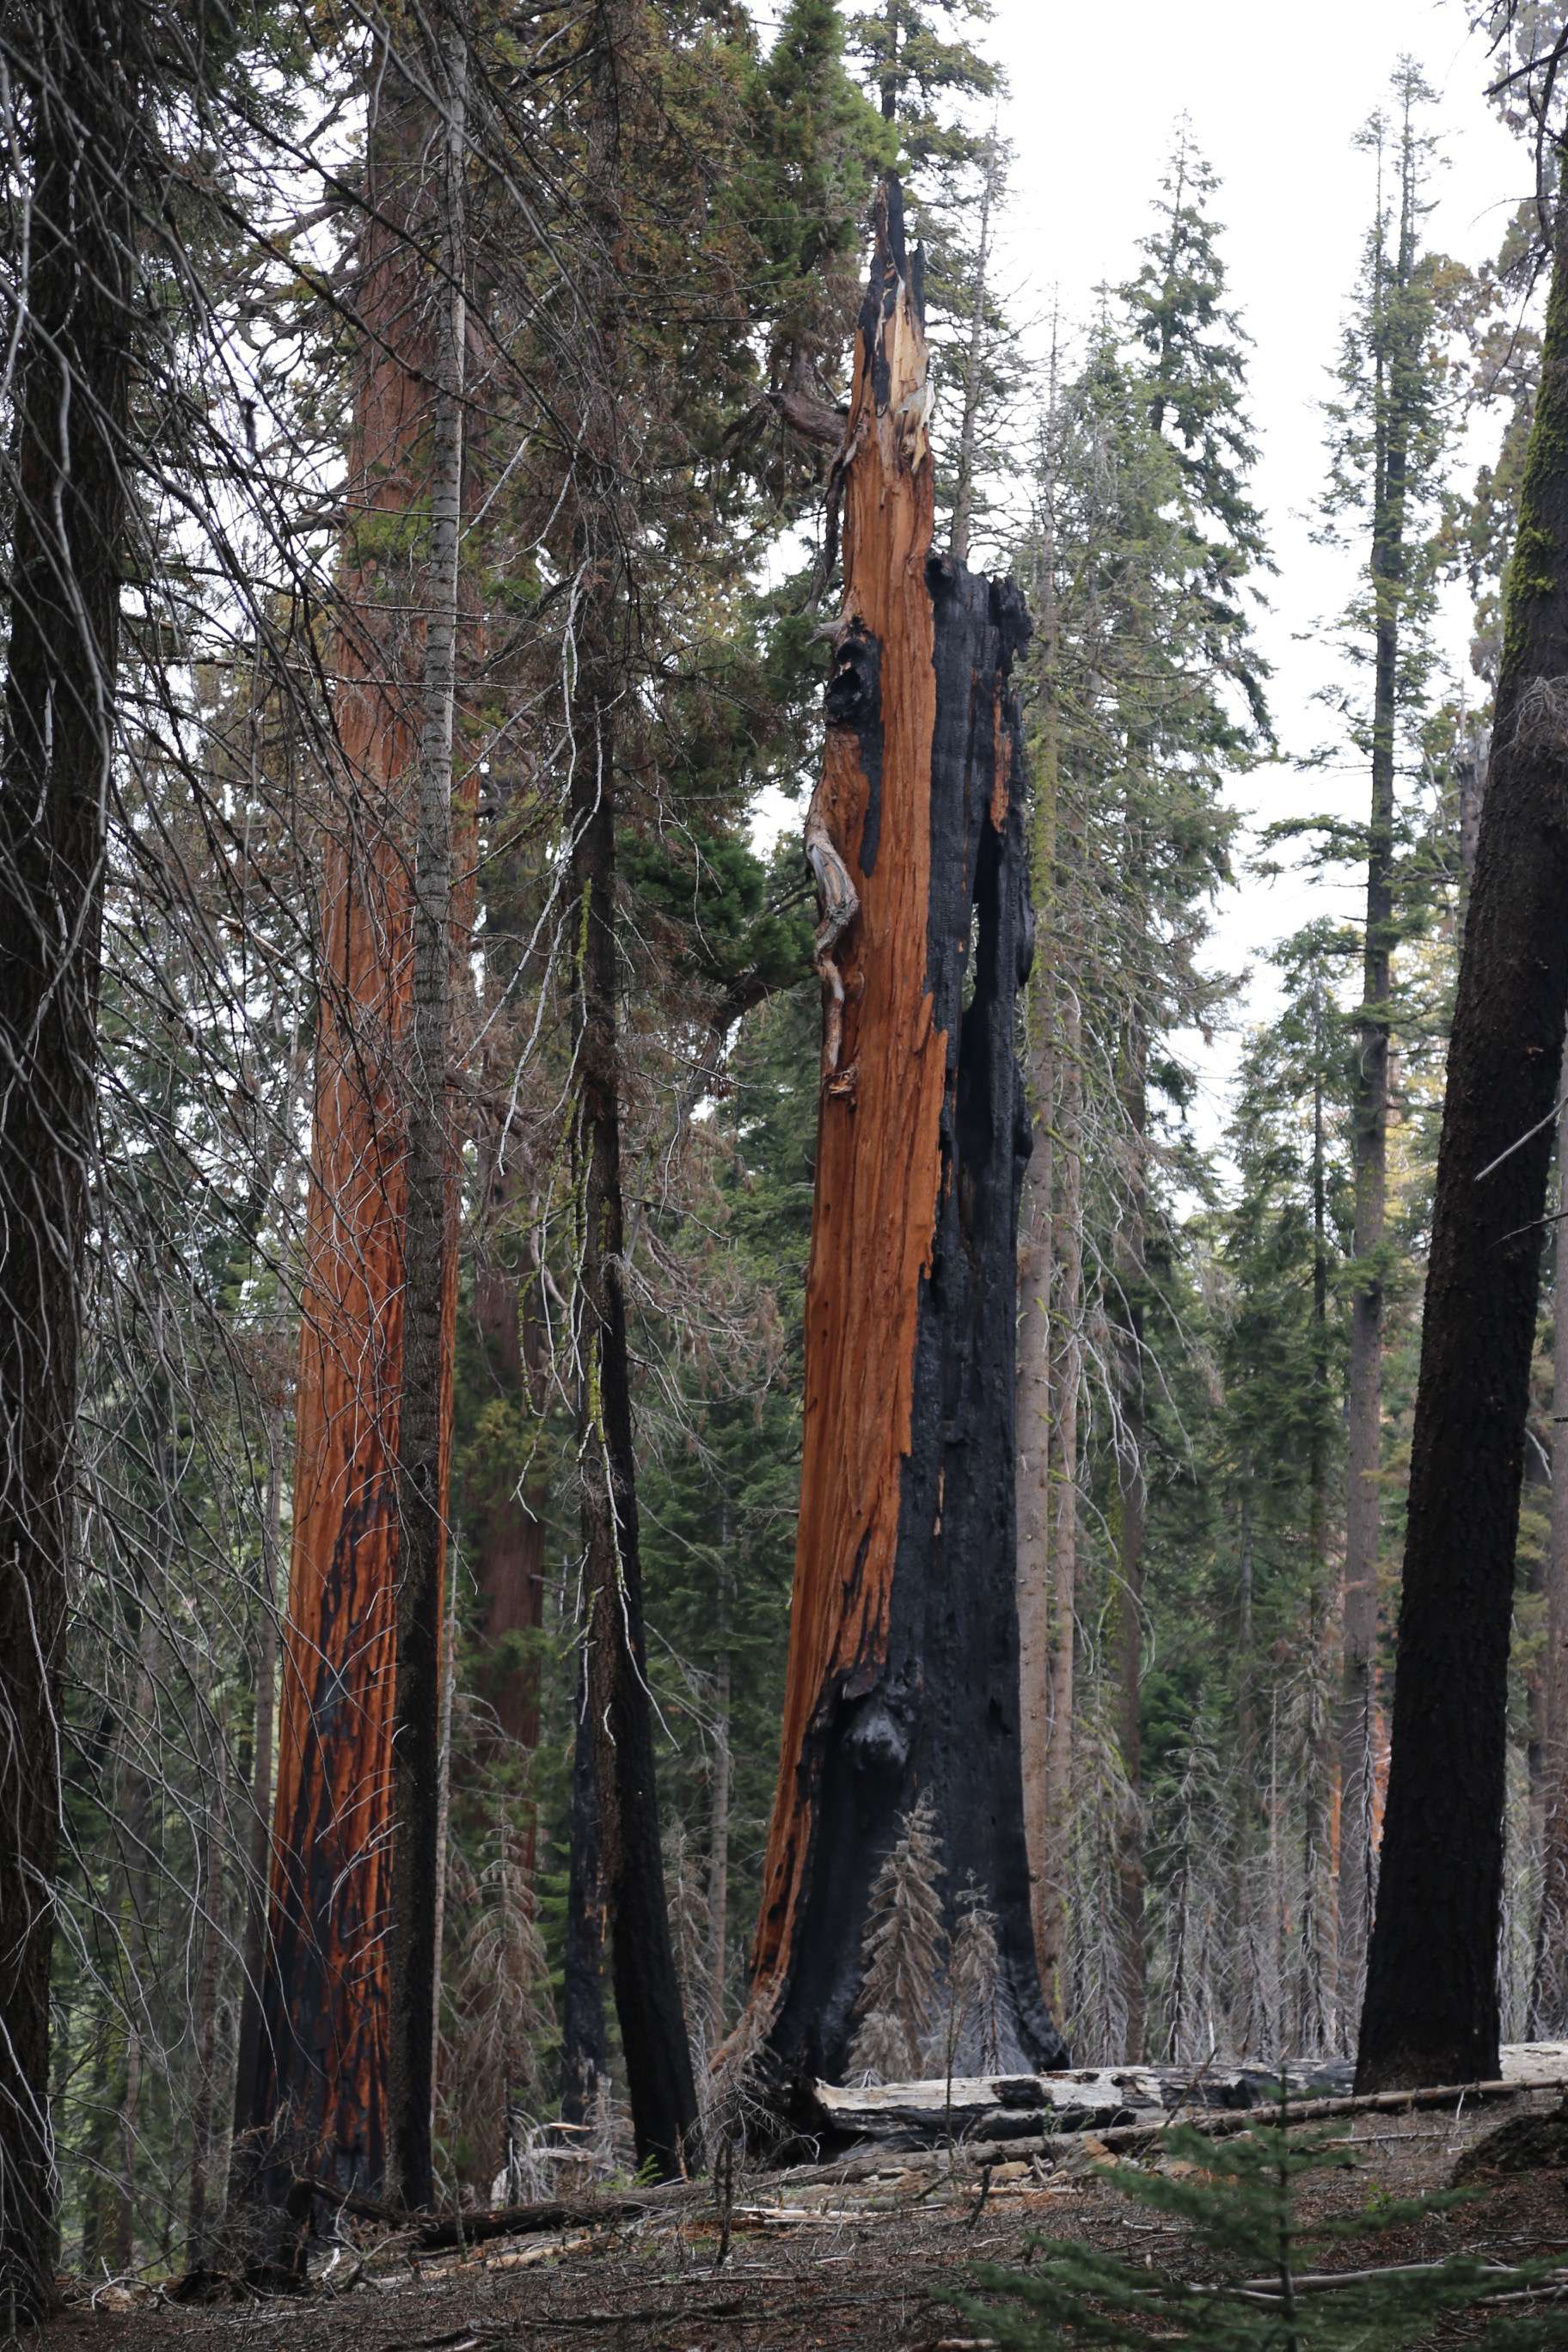 Giant sequoias can live on despite being seriously damaged by fire or lightning.